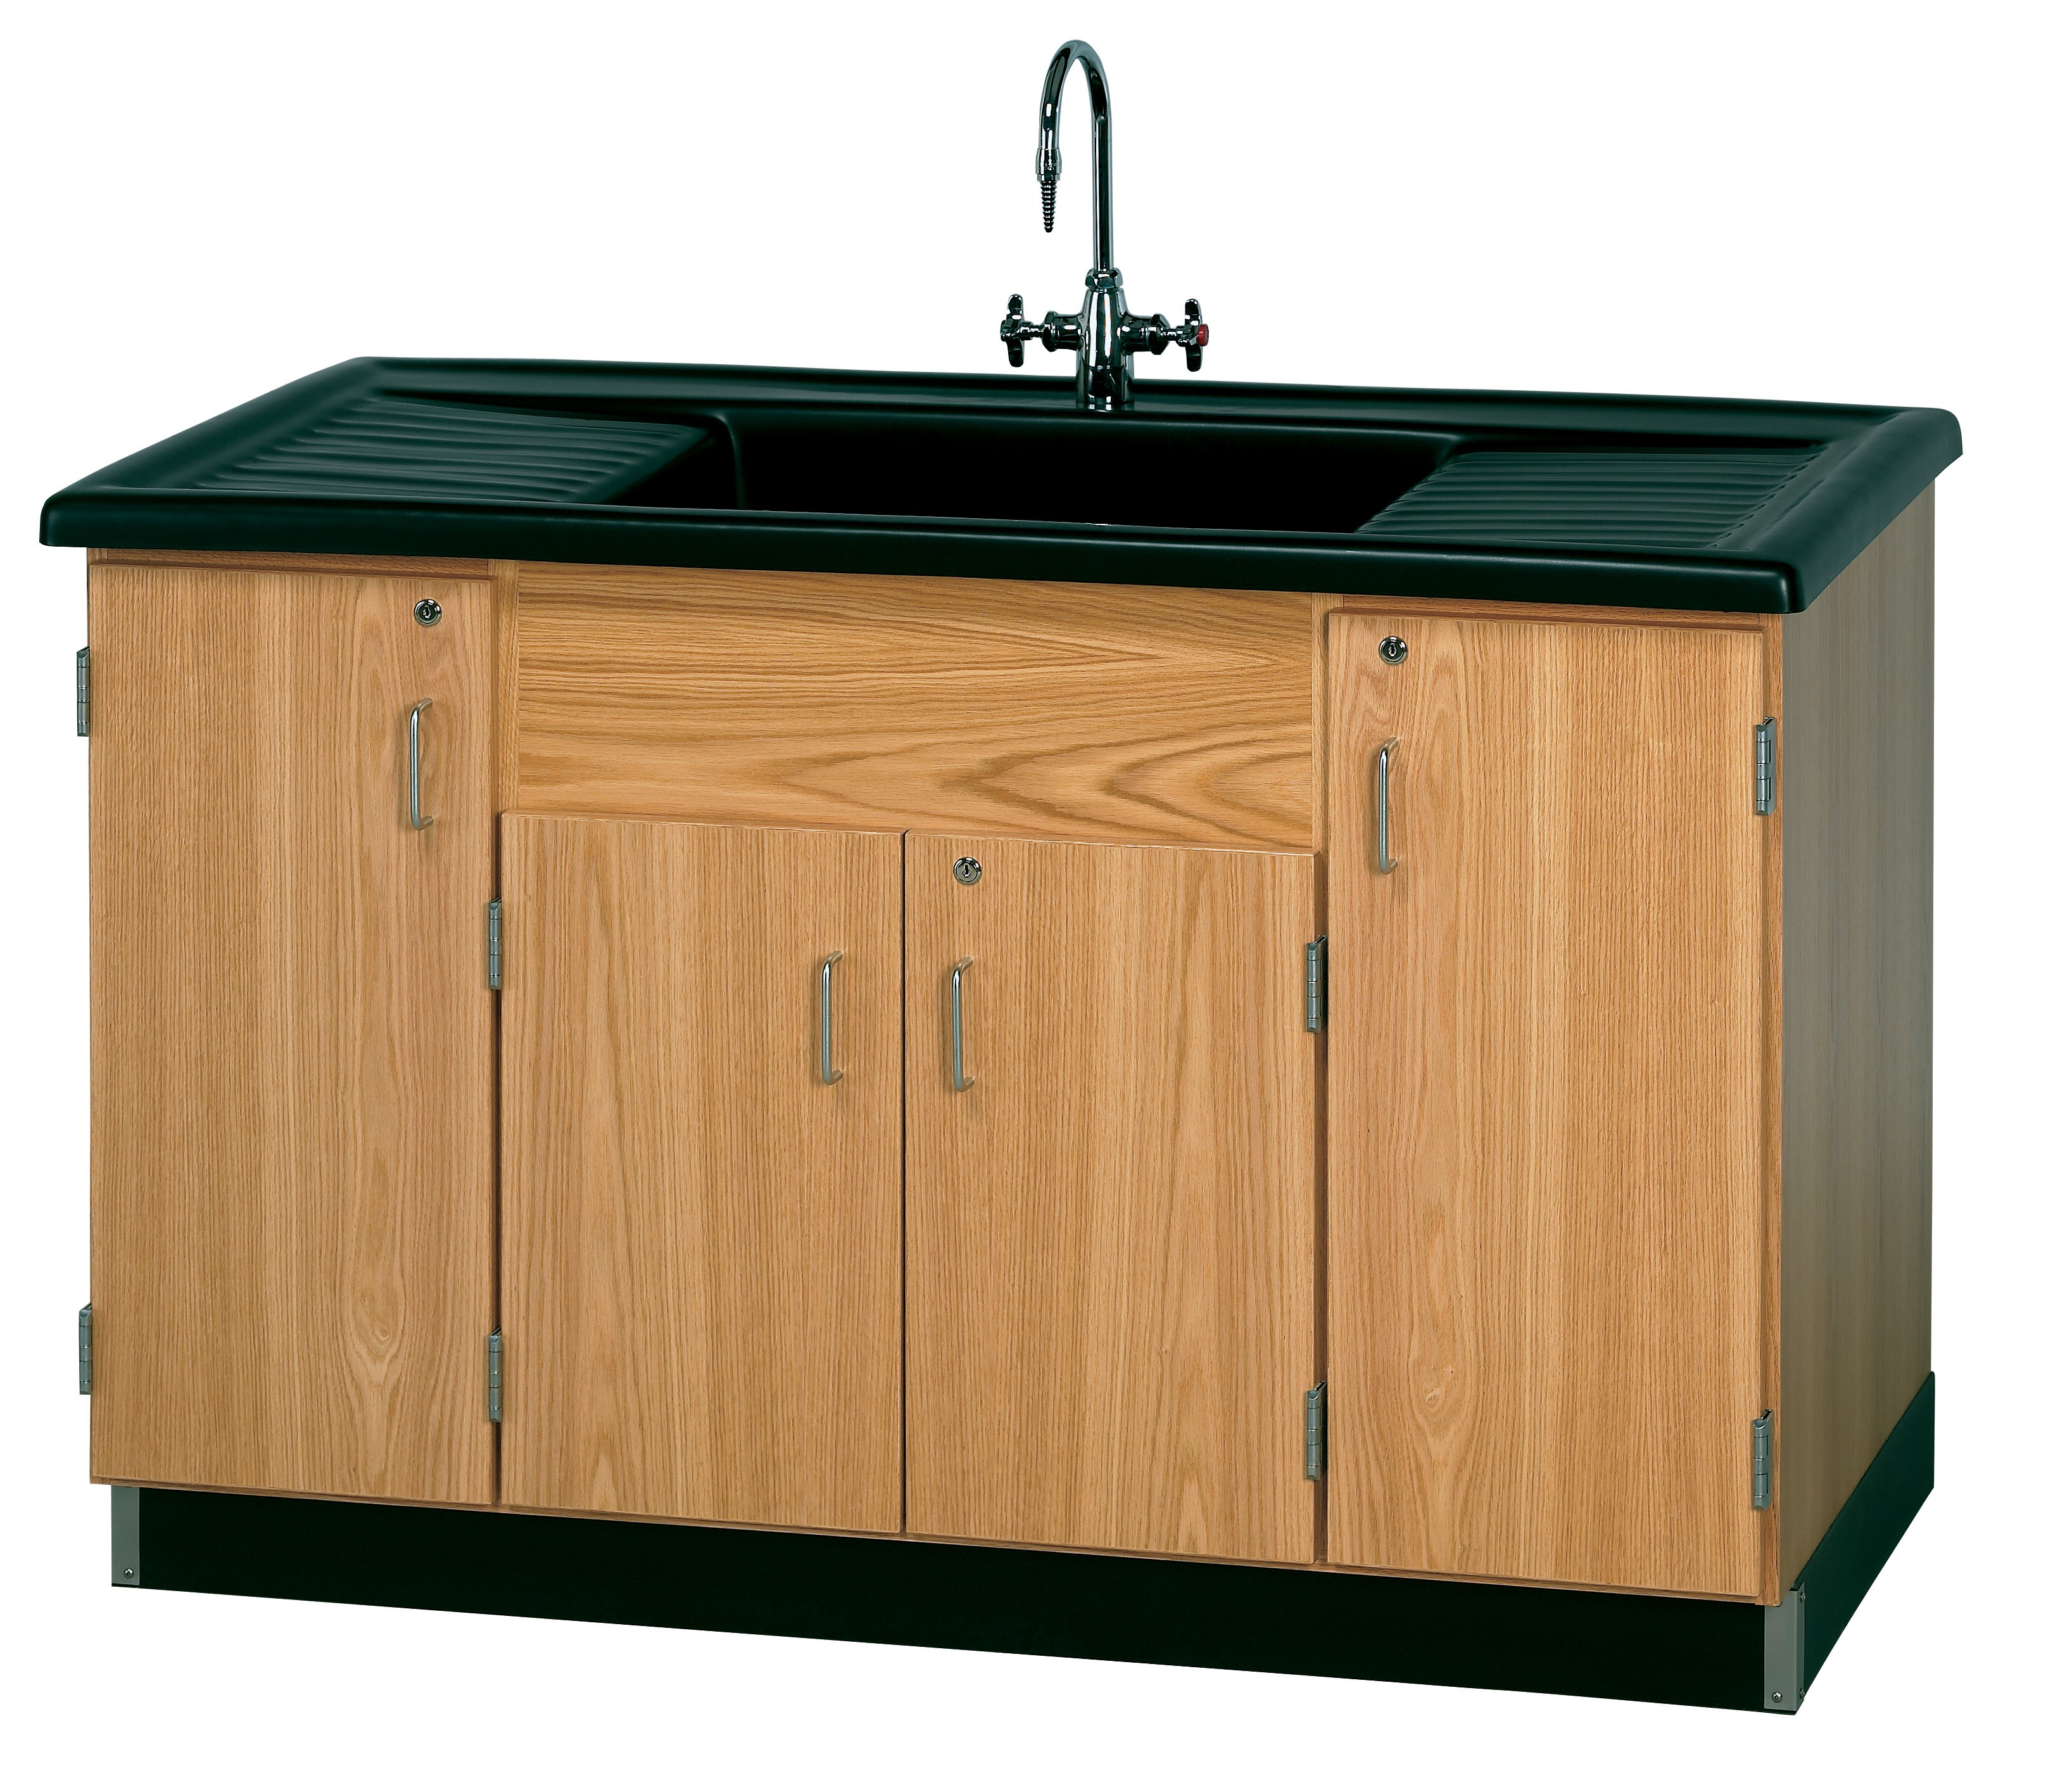 Very Impressive portraiture of UV Finish Solid Oak Wood Clean Up Sink with Epoxy Resin Top 55½ W x  with #A0692B color and 3272x2788 pixels